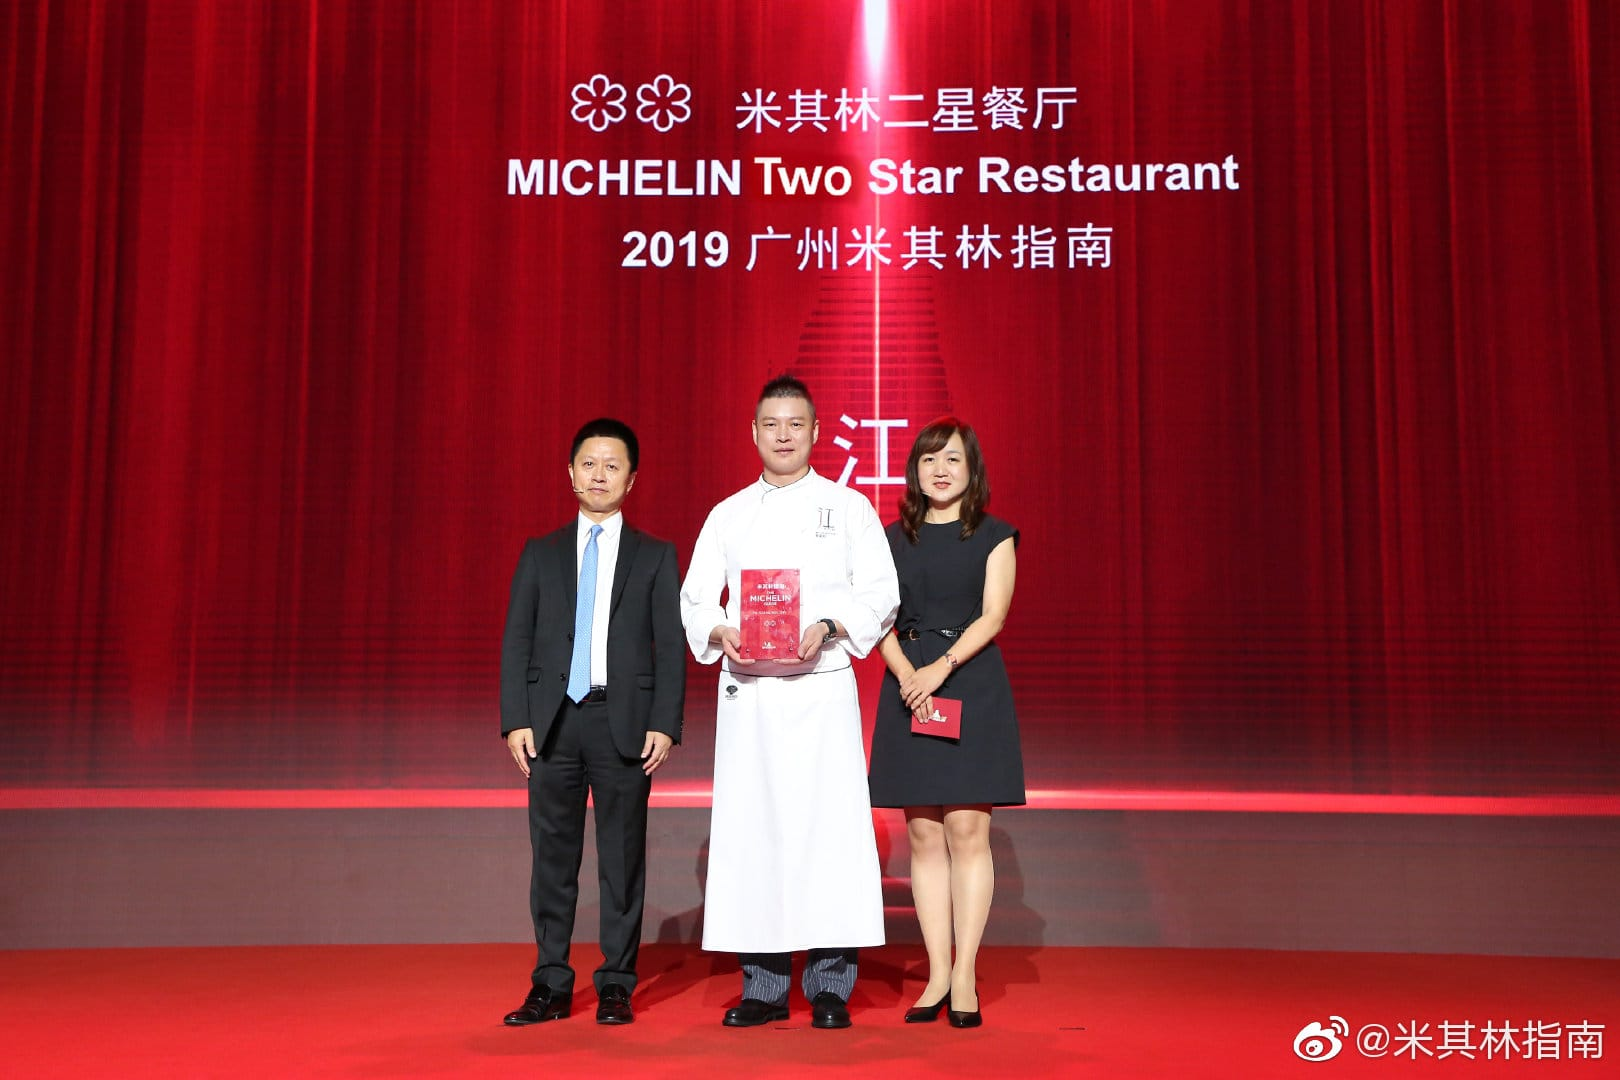 Jiang By Chef Fei at the Mandarin Oriental Hotel in Guangzhou. (Pic: MICHELIN Guide China)